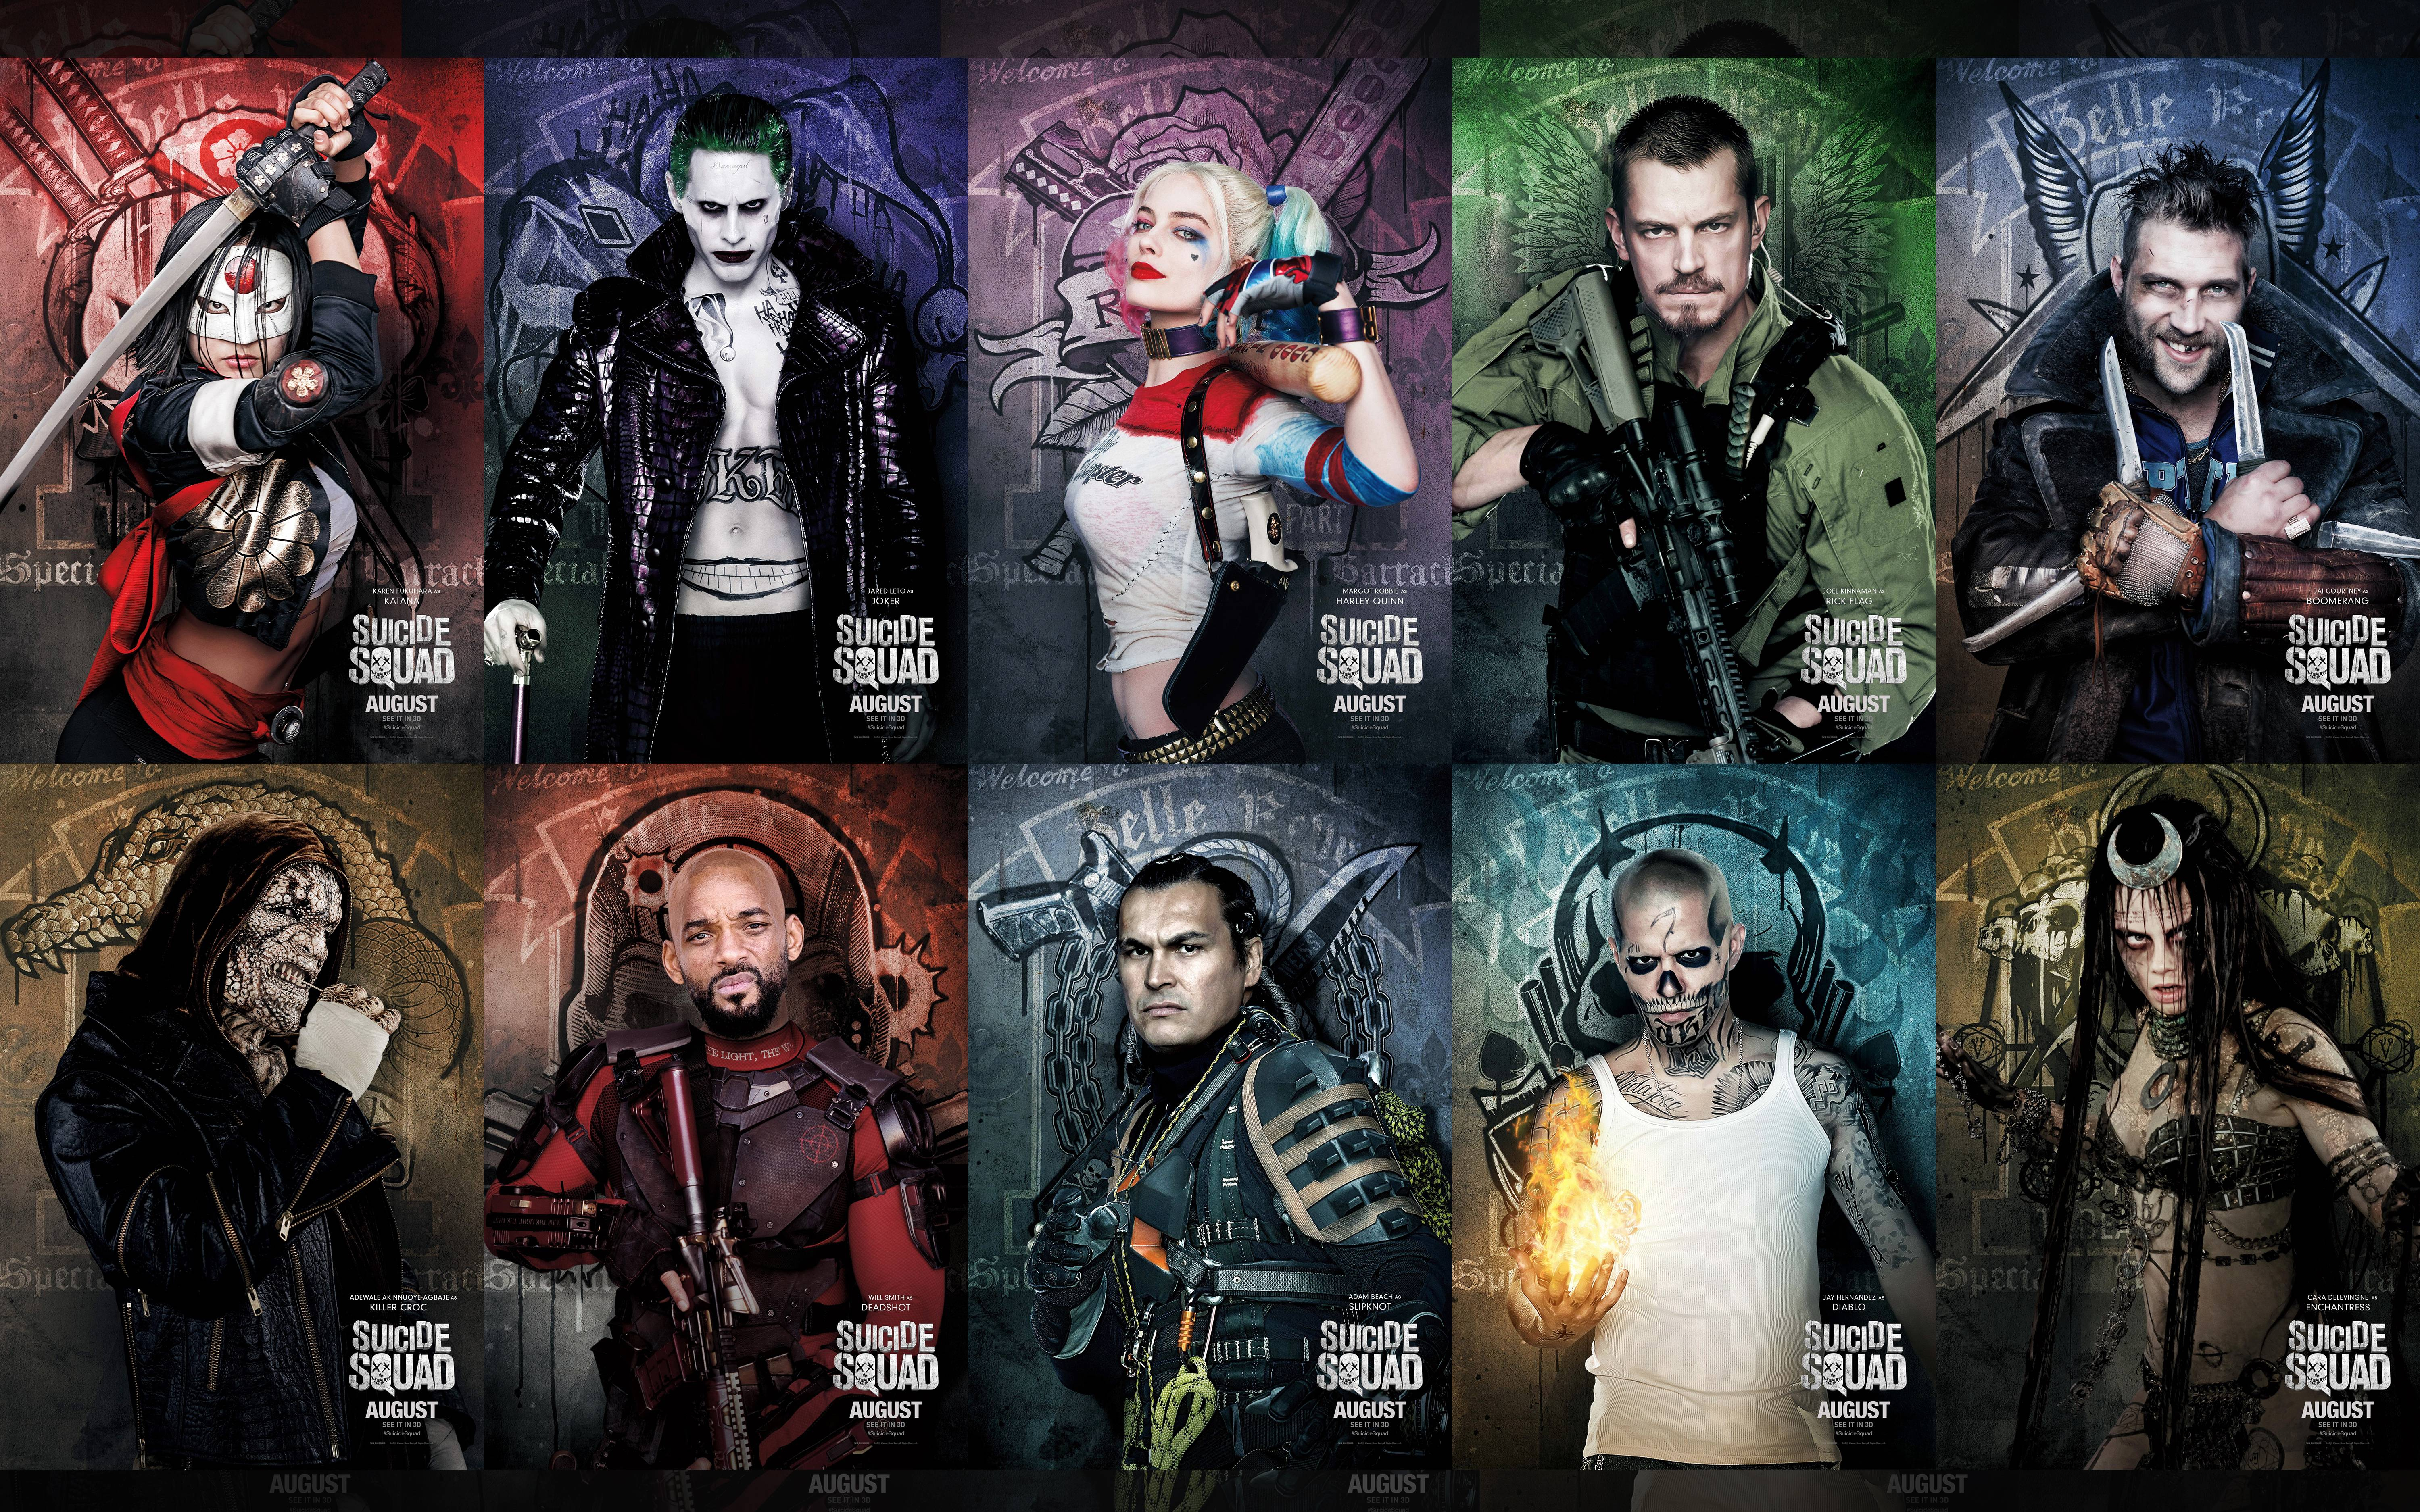 6000x3750 Pictures Suicide Squad 2016 Will Smith Joker hero Harley 6000x3750